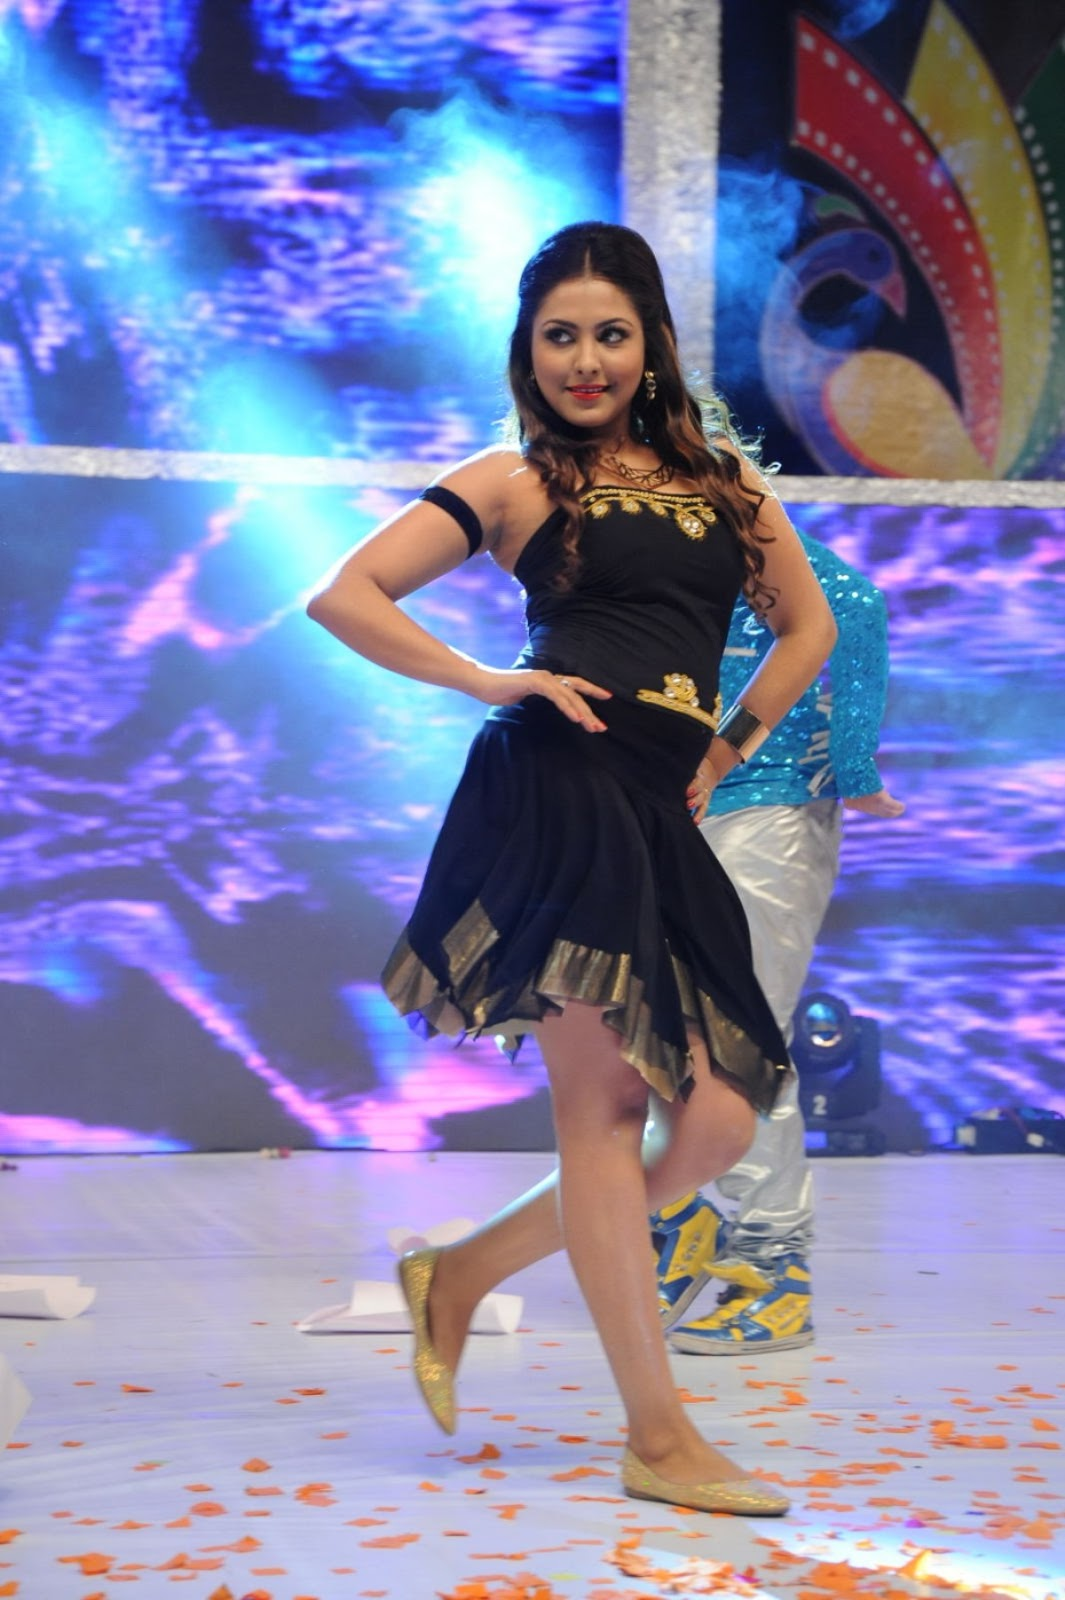 Madhu Shalini Nude Photos Ele madhu shalini hot dance performance photos at tollywood channel